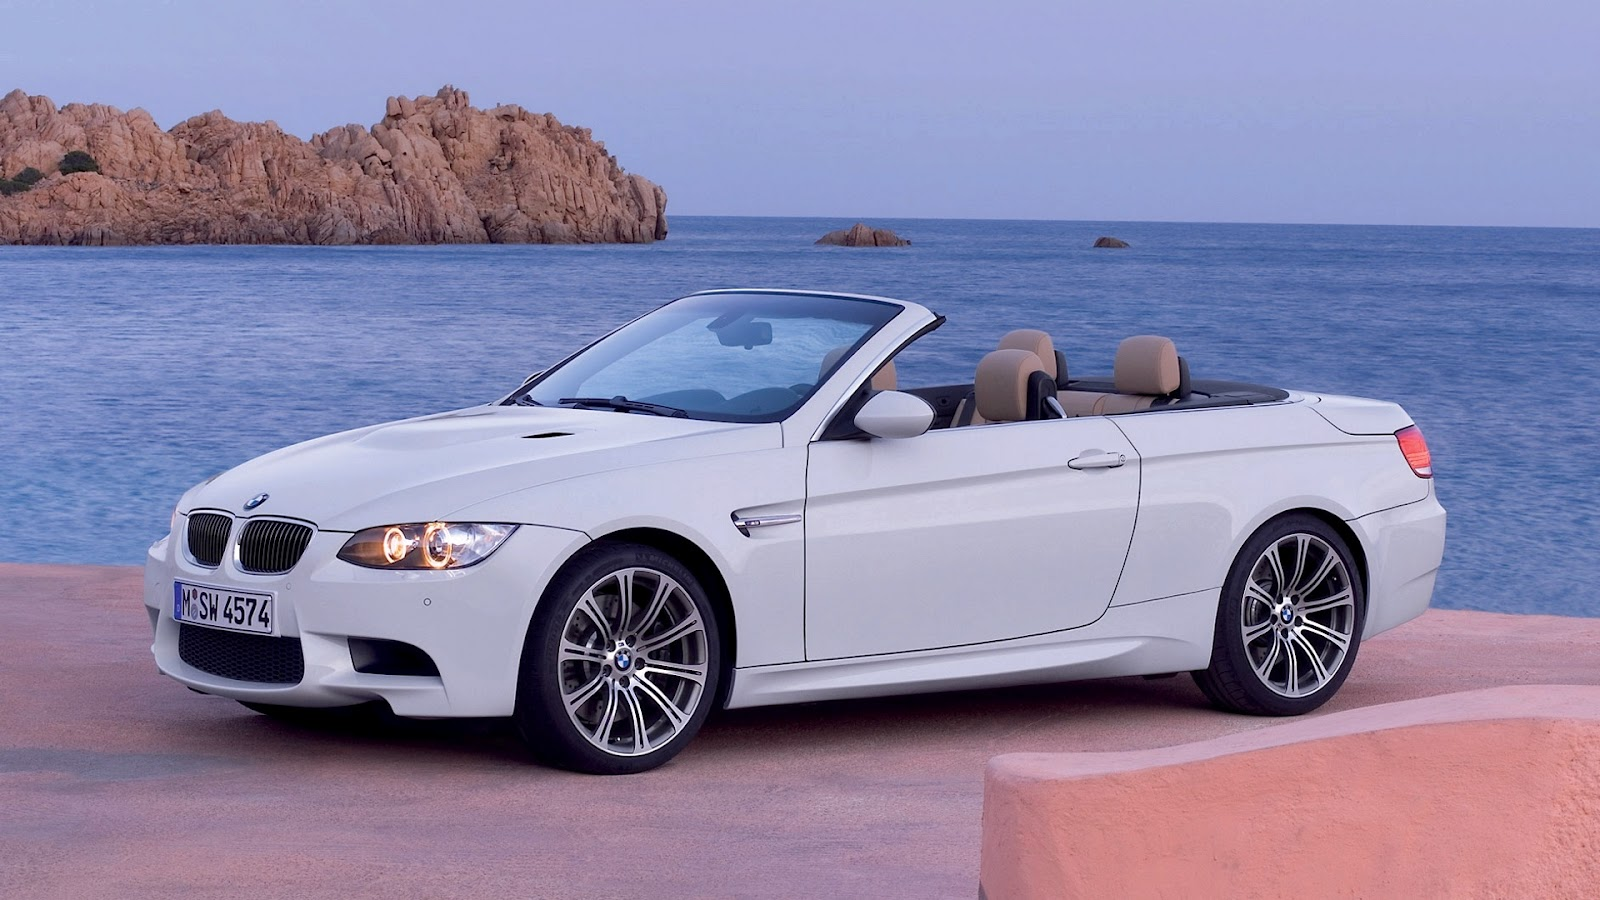 BMW Car Wallpapers HD | Nice Wallpapers